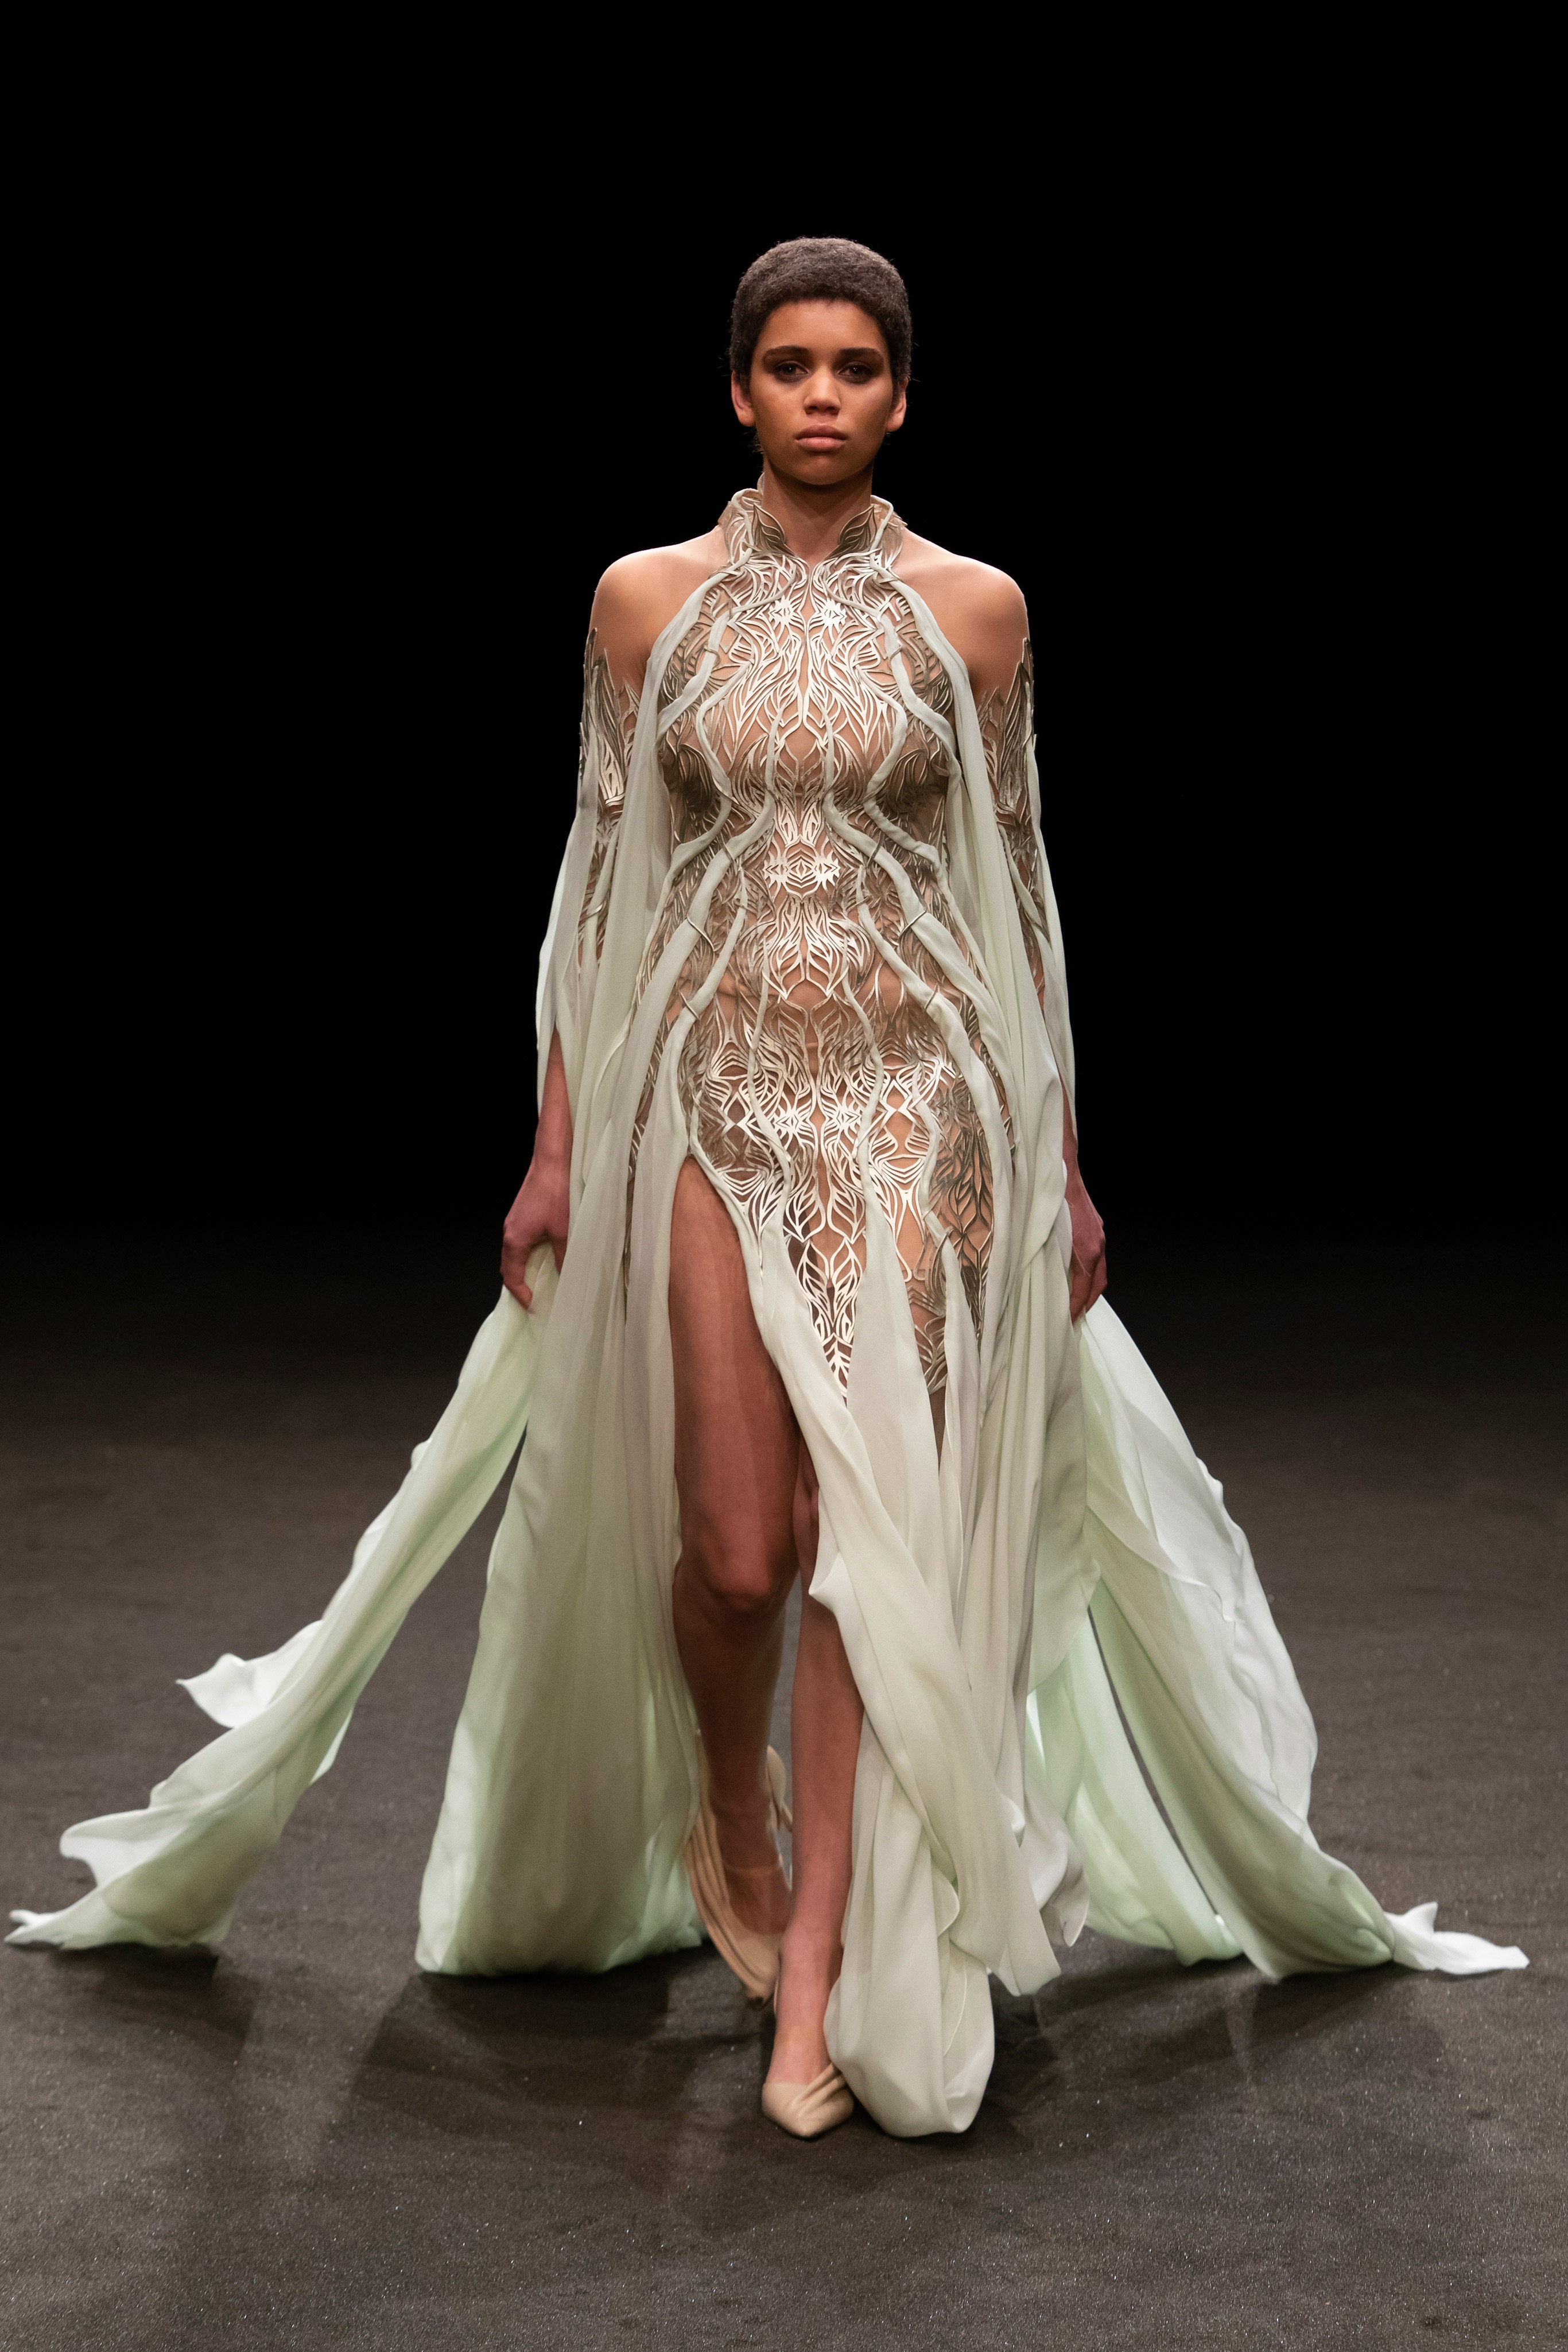 Iris van Herpen Spring 2021 Couture. A lady wearing a mint colored gown with a train and pattern work on the bodice.